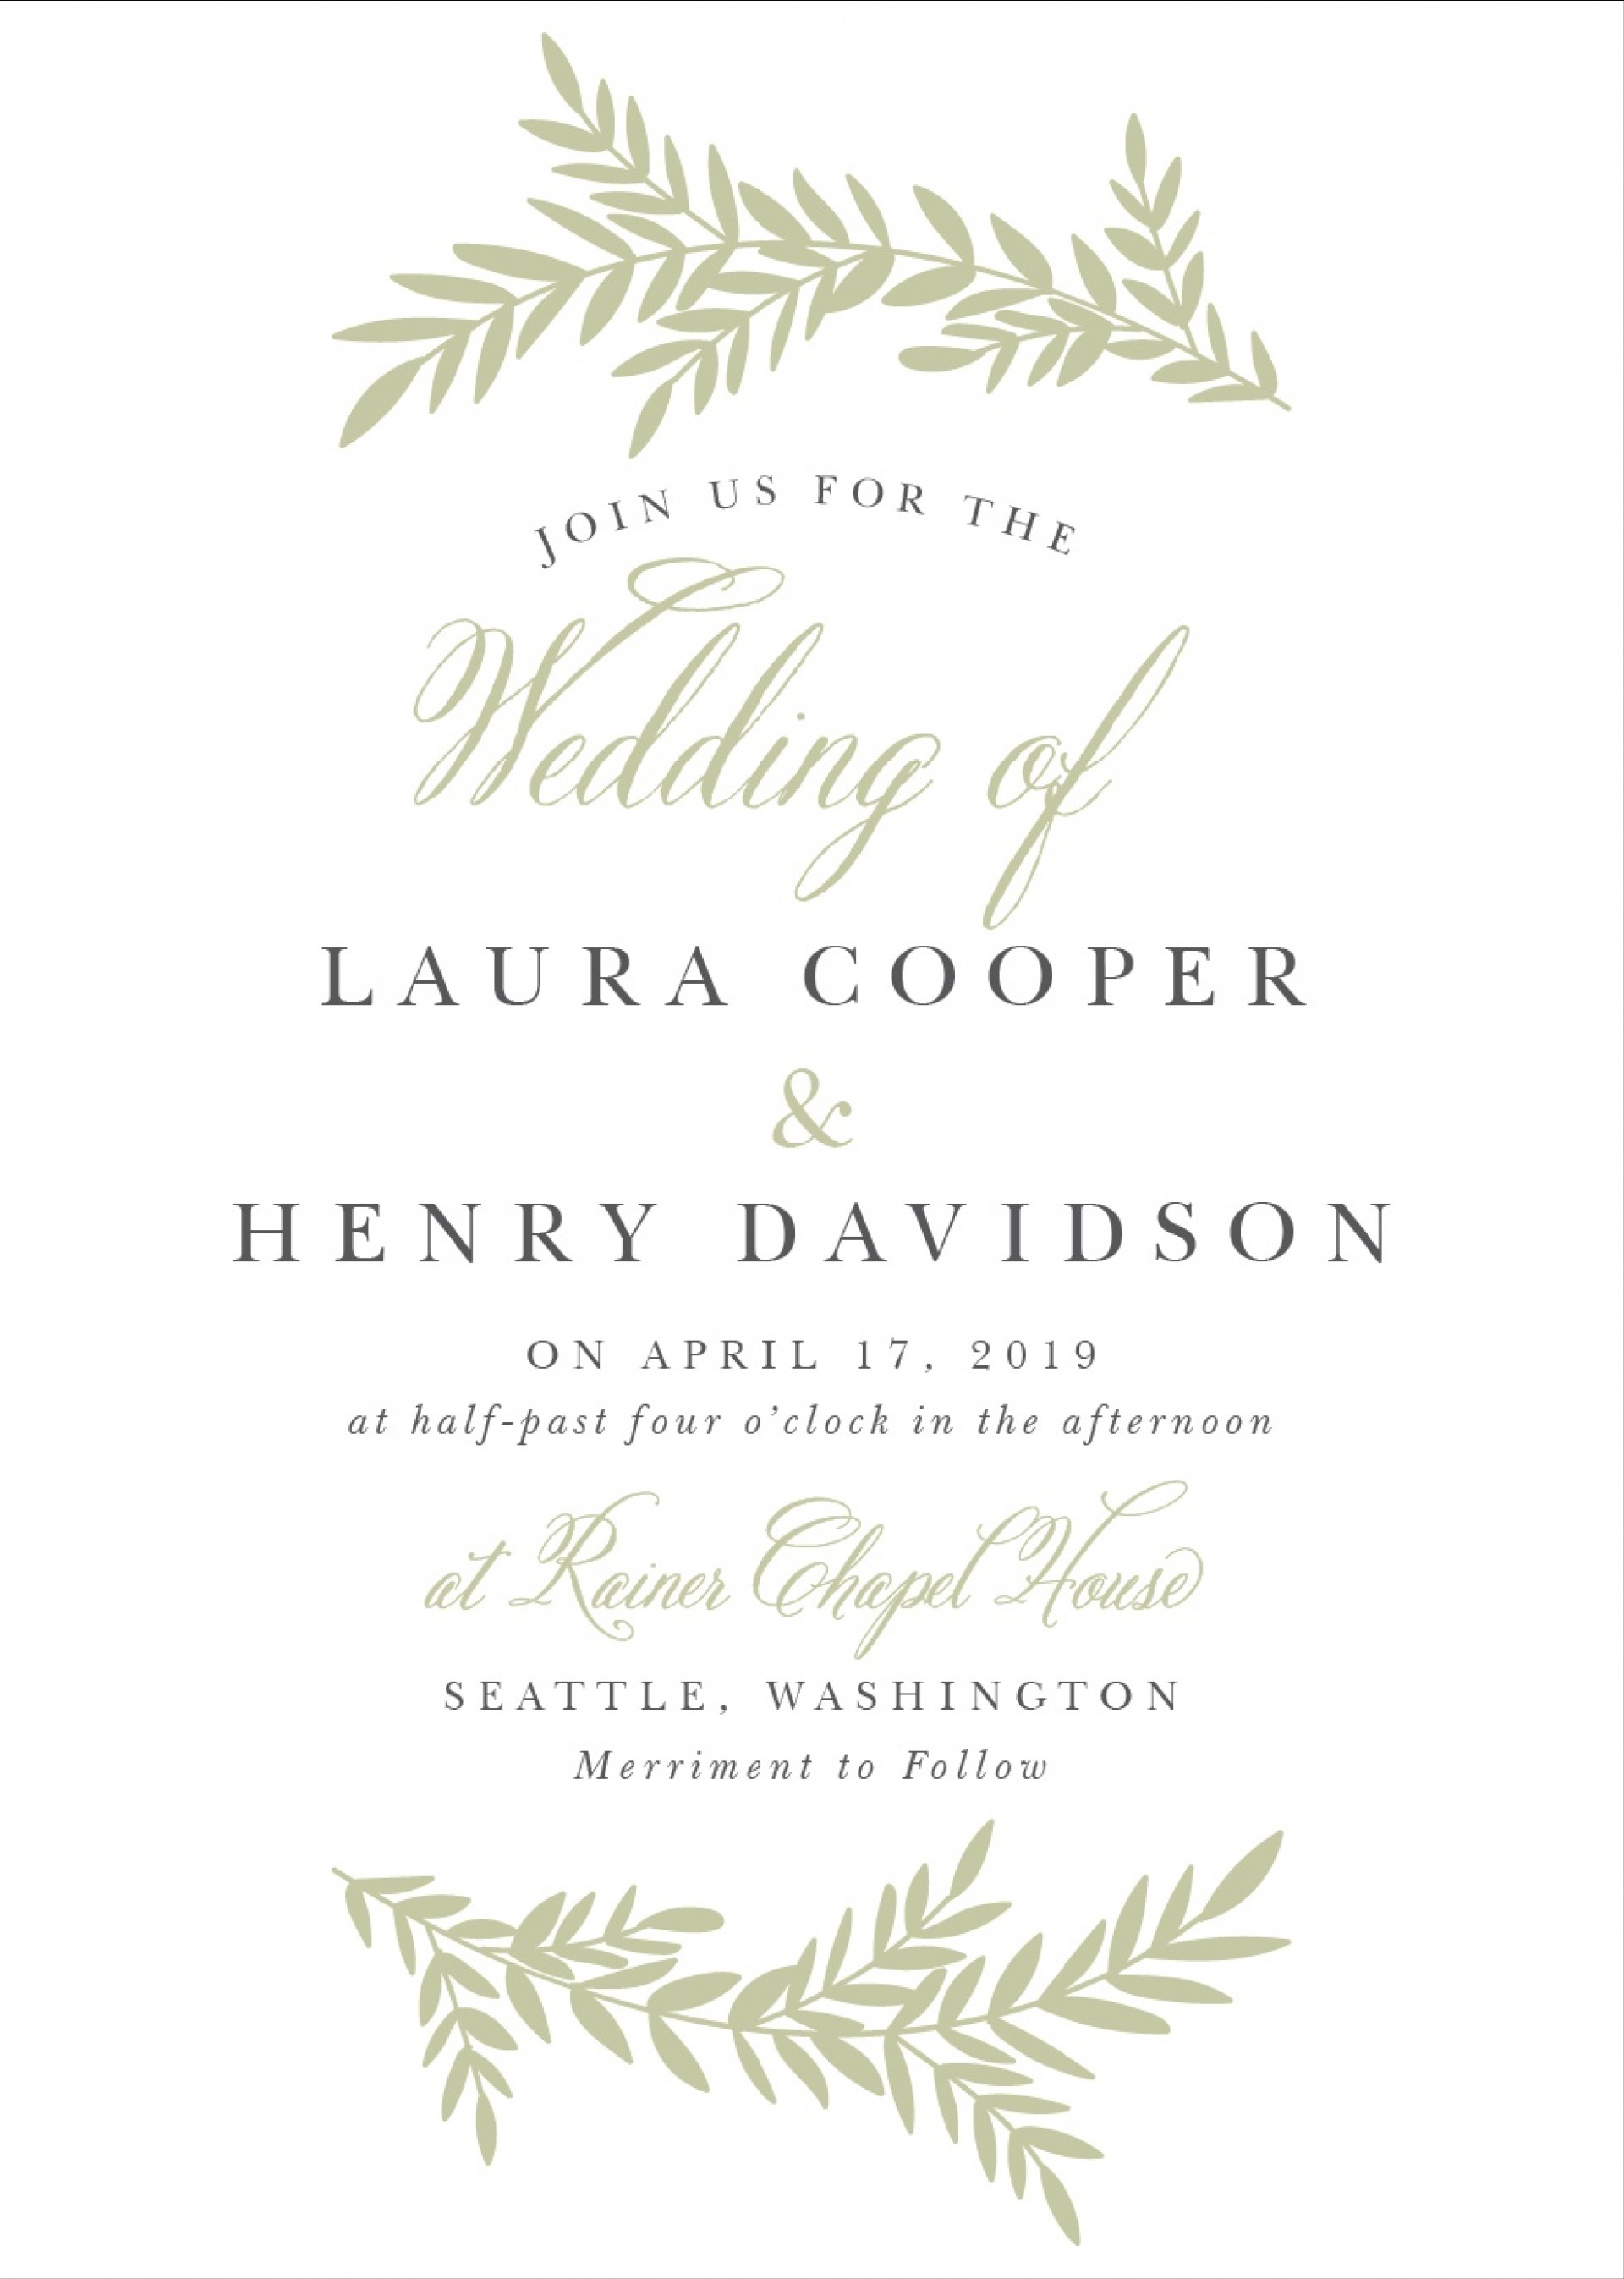 009 Incredible Wedding Invite Wording Template Example  Templates Chinese Invitation Microsoft Word From Bride And Groom Inviting1920